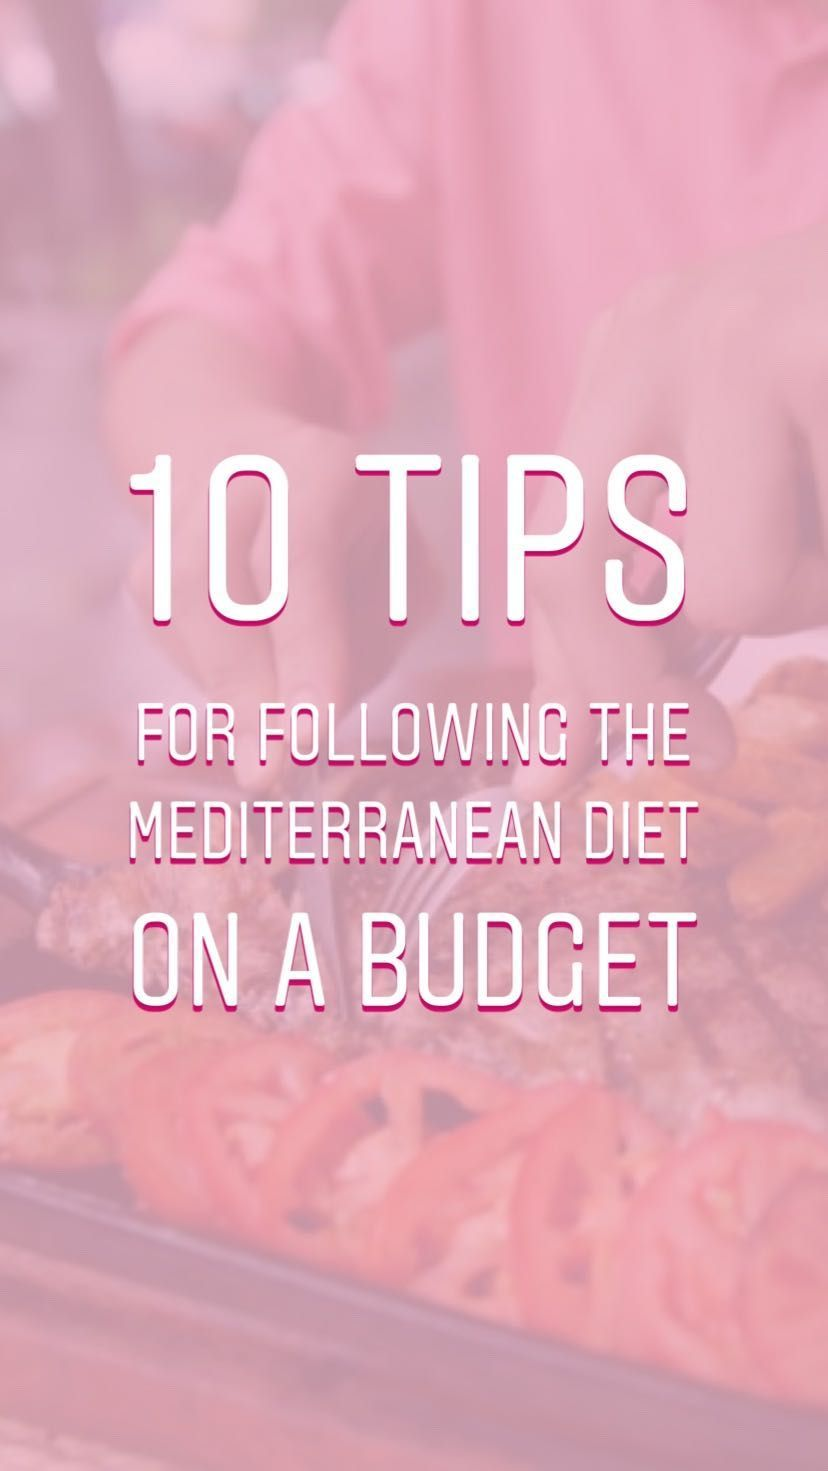 10 tips for following the Mediterranean diet on a budget